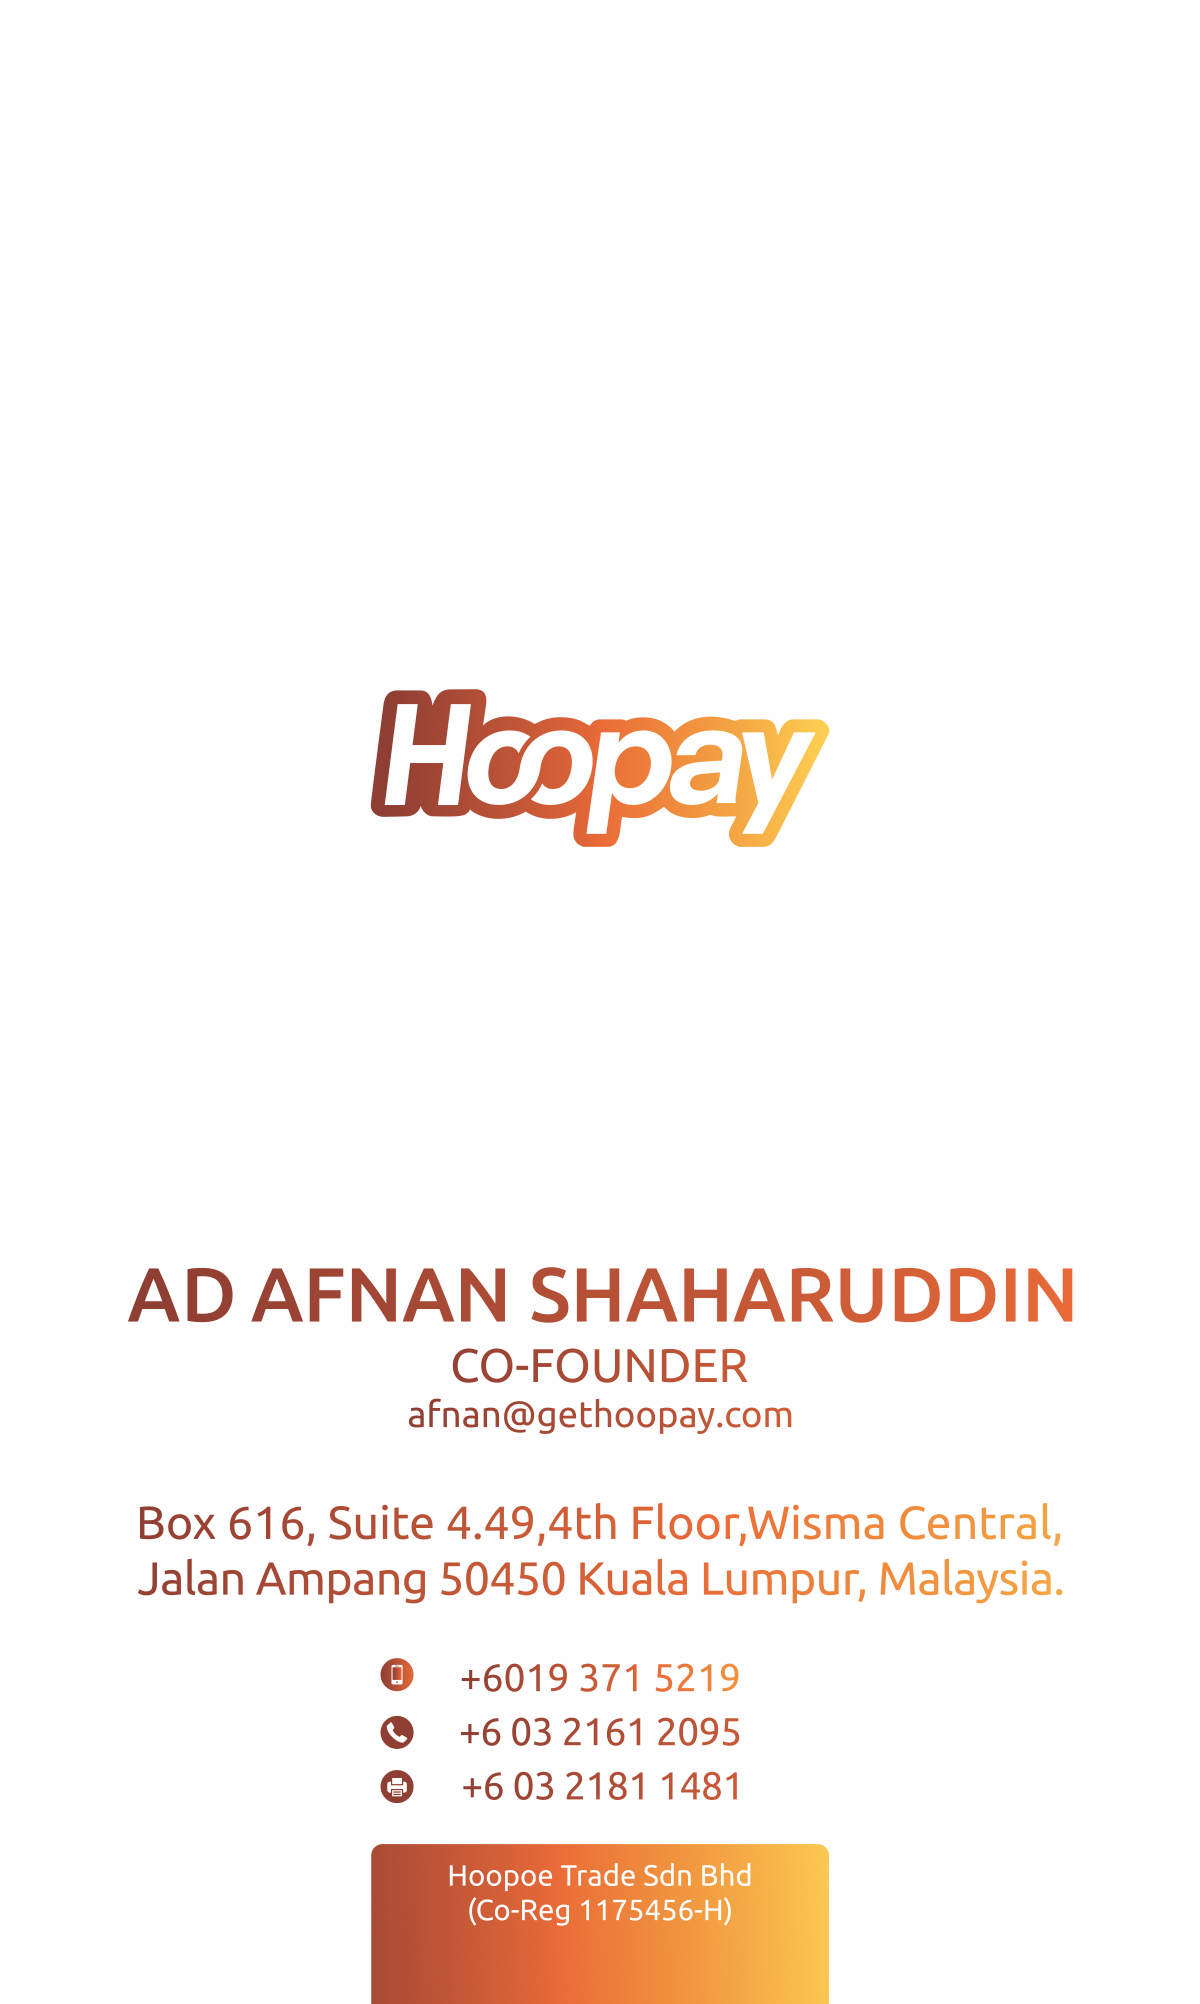 Hoopay multi currency card to ease travelling and money transfer.